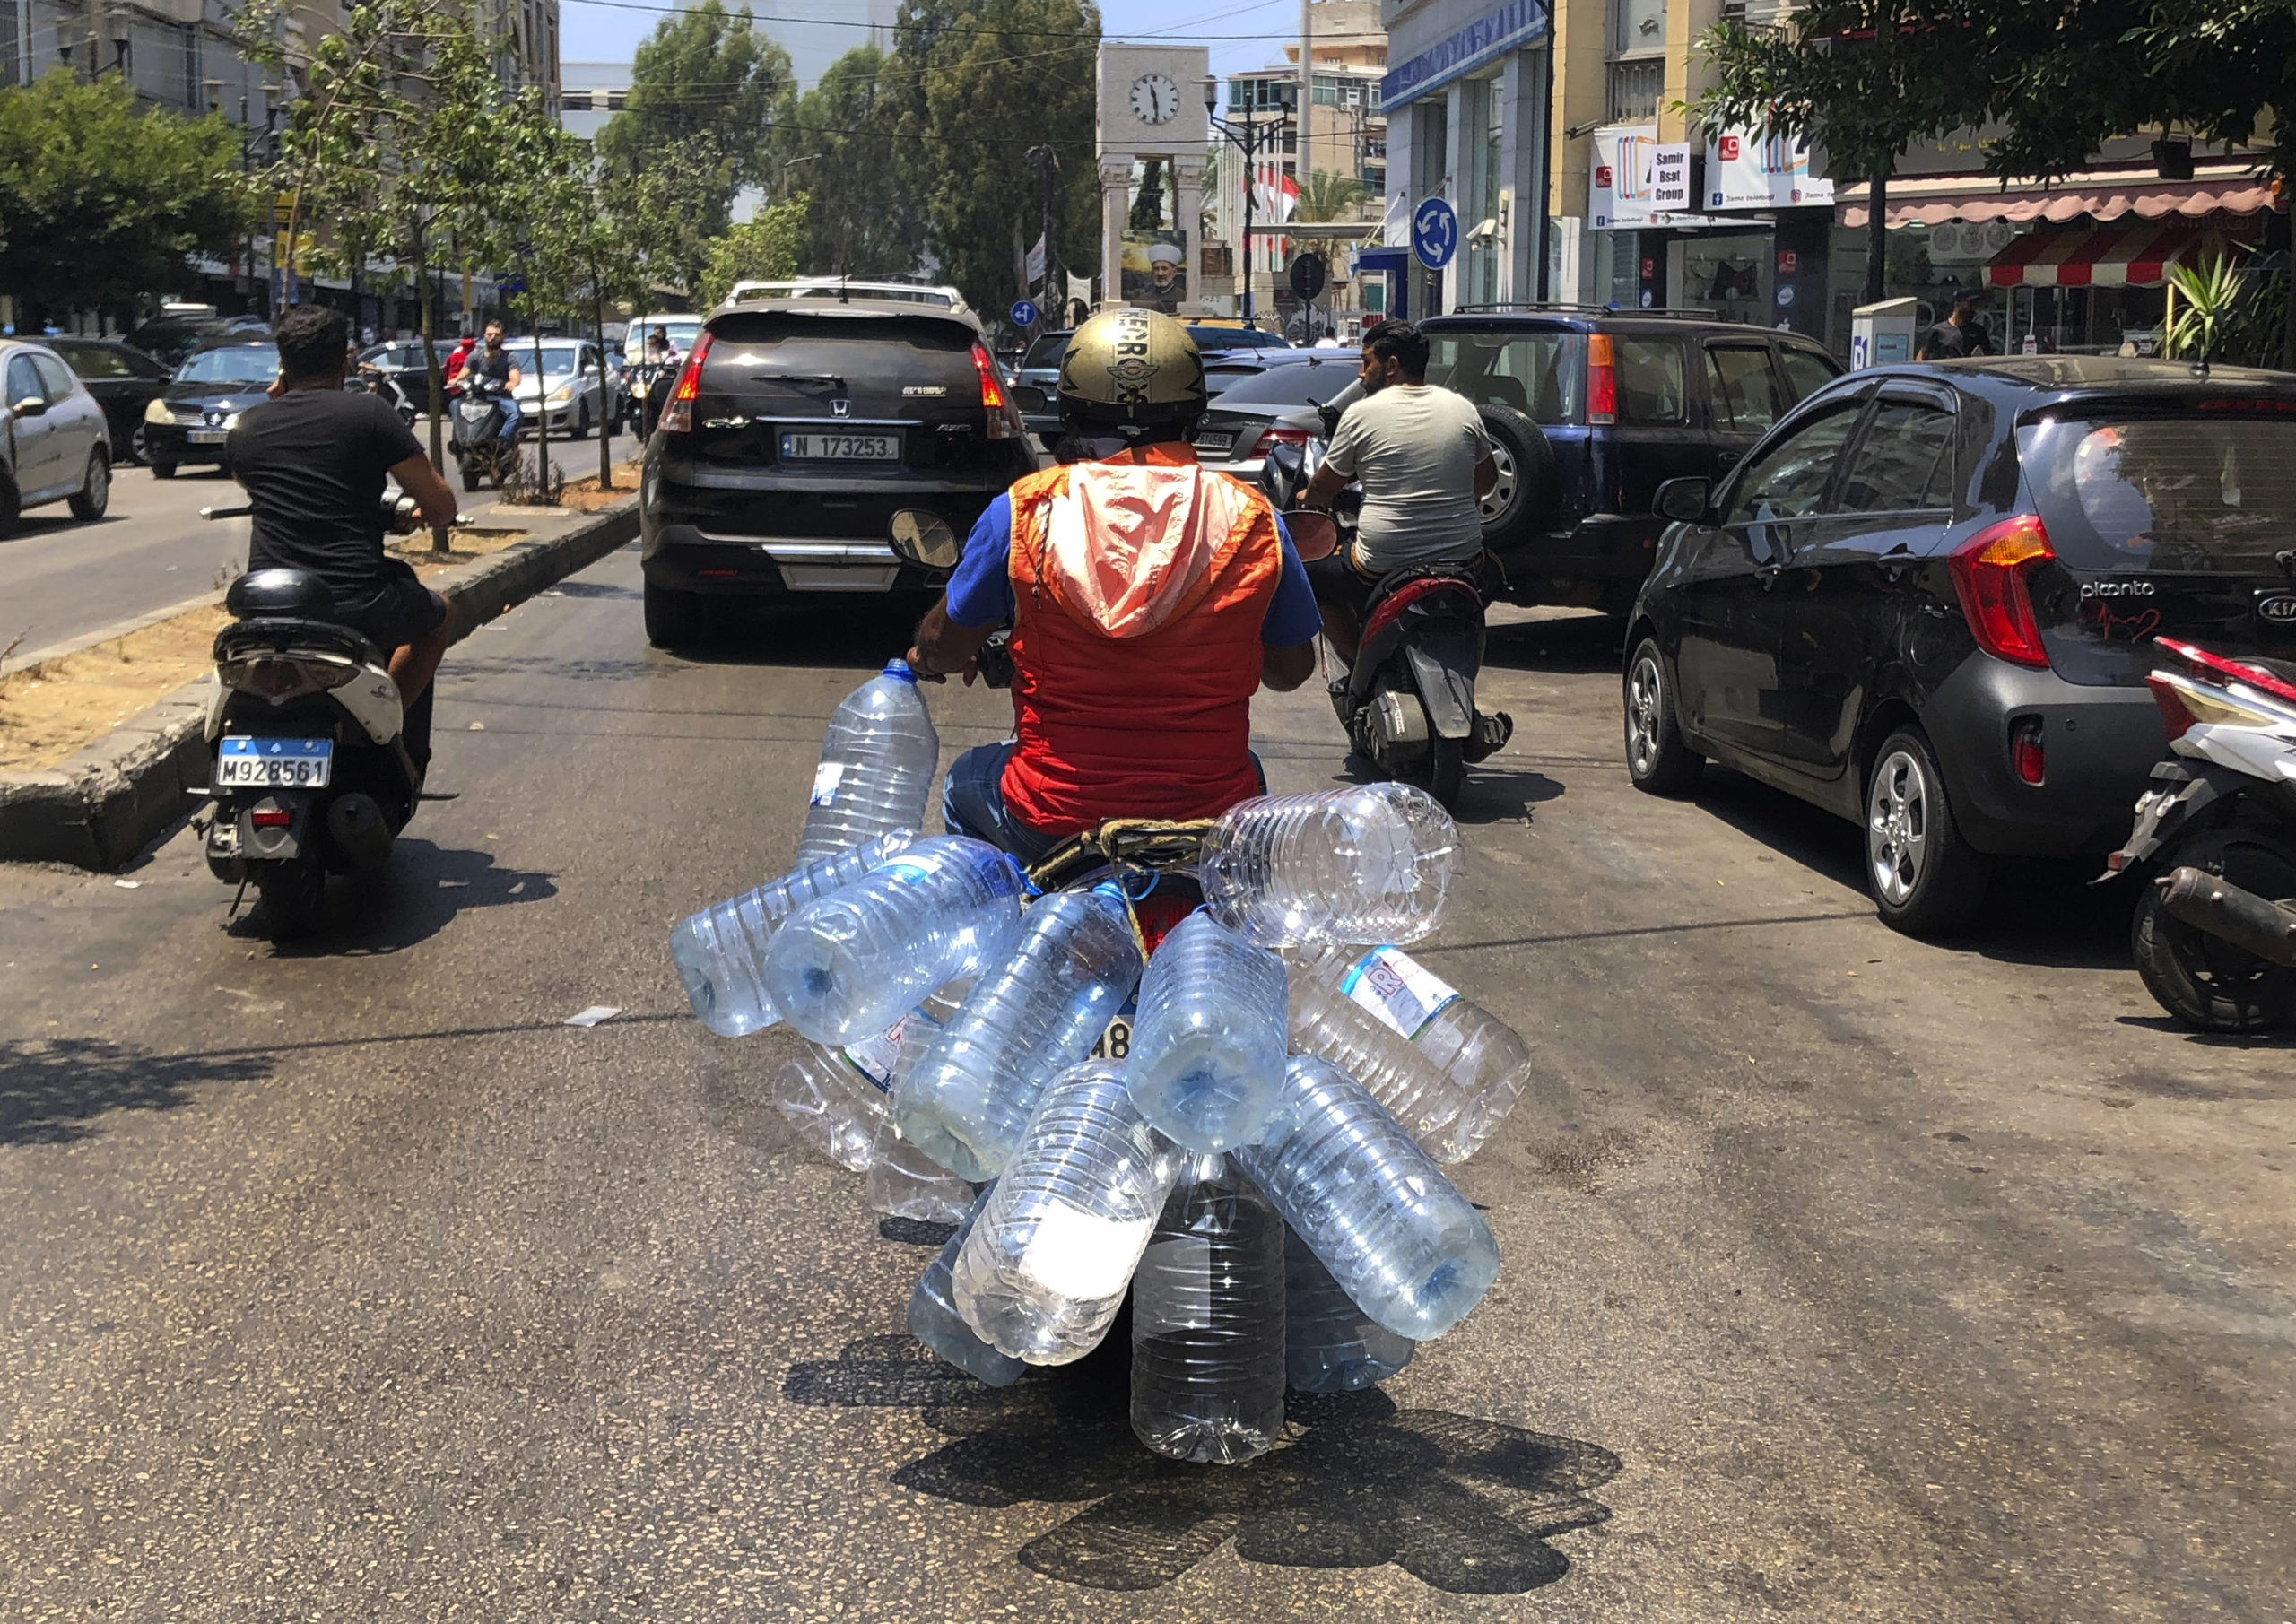 UNICEF warns millions of Lebanese face water shortages